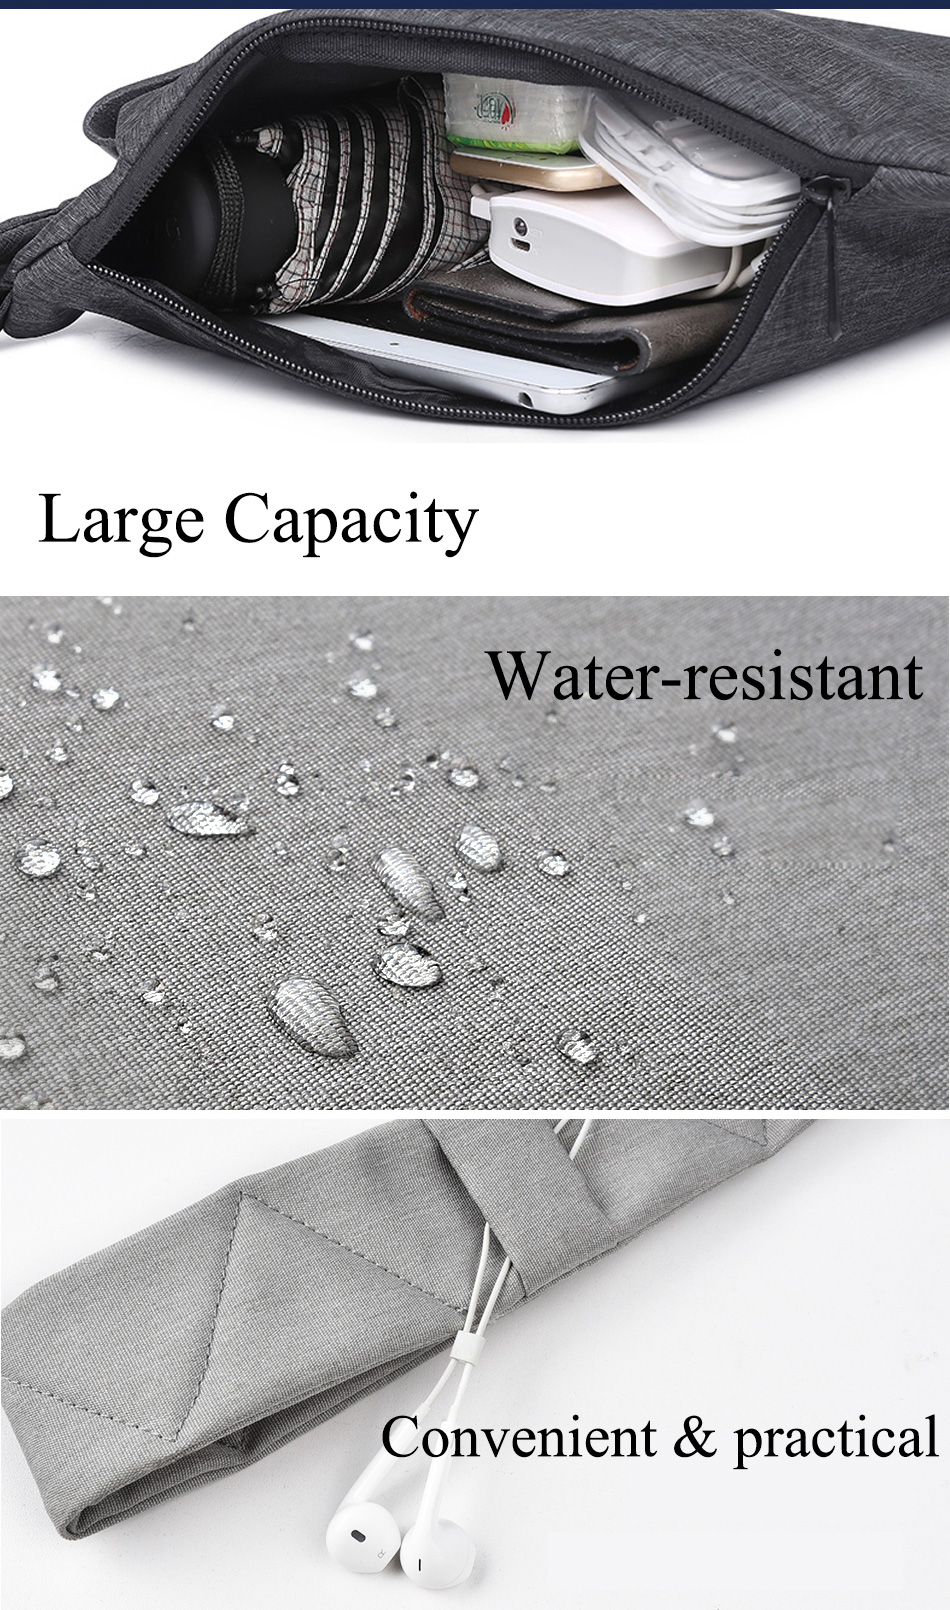 WIWU Cross-body Bag Water-proof Chest Travel Anti-theft Shoulder Bags 5